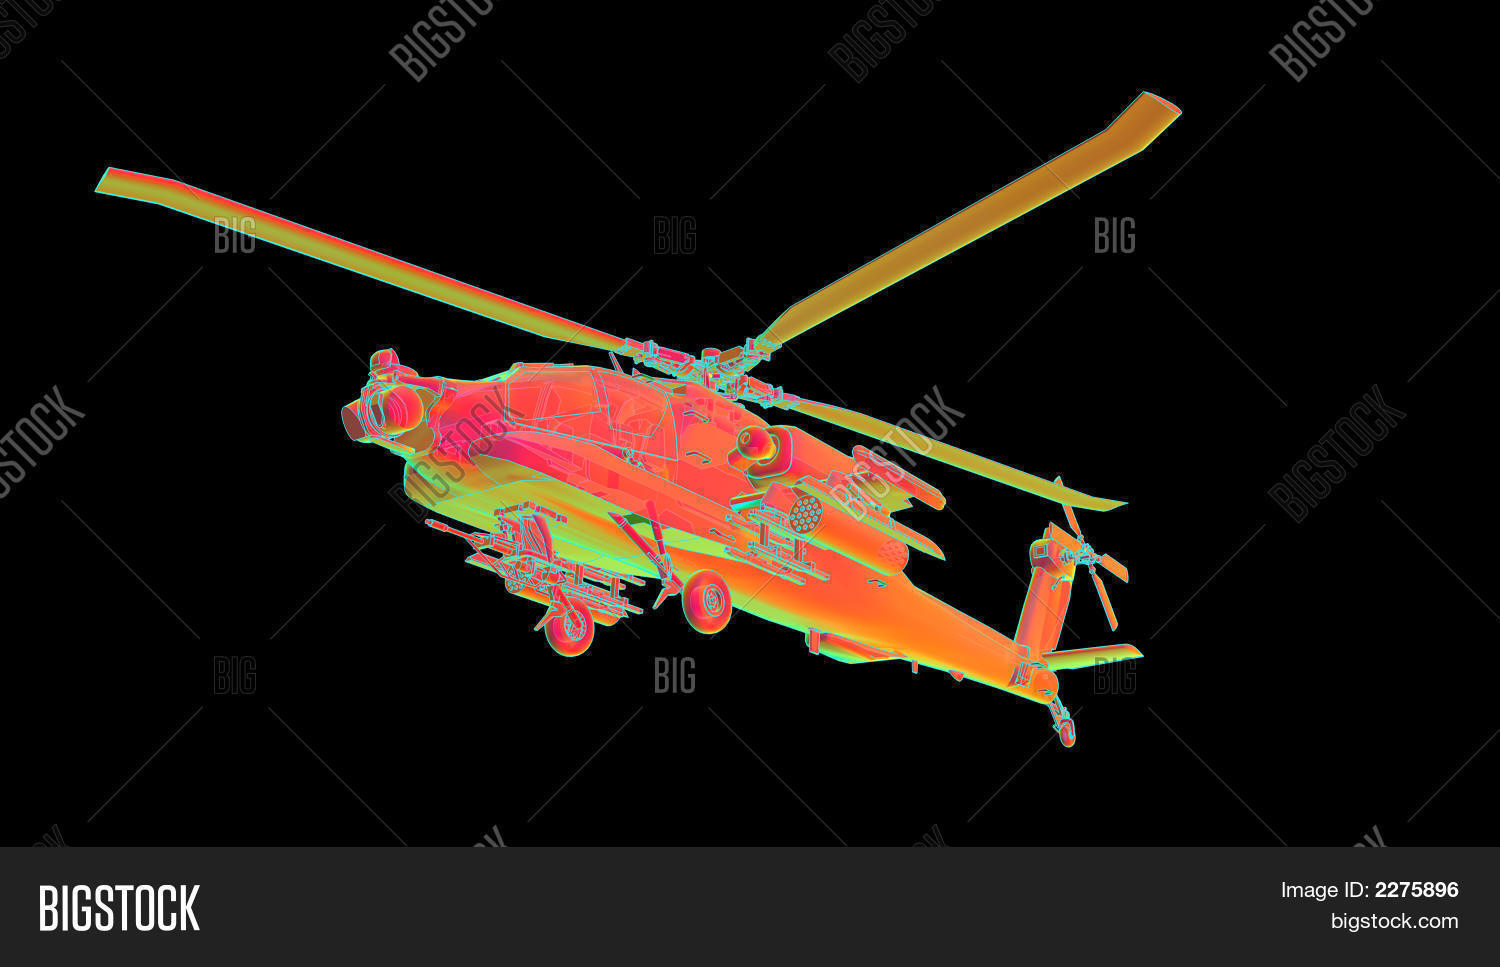 hight resolution of illustration of an apache helicopter with a heat sensitive shader